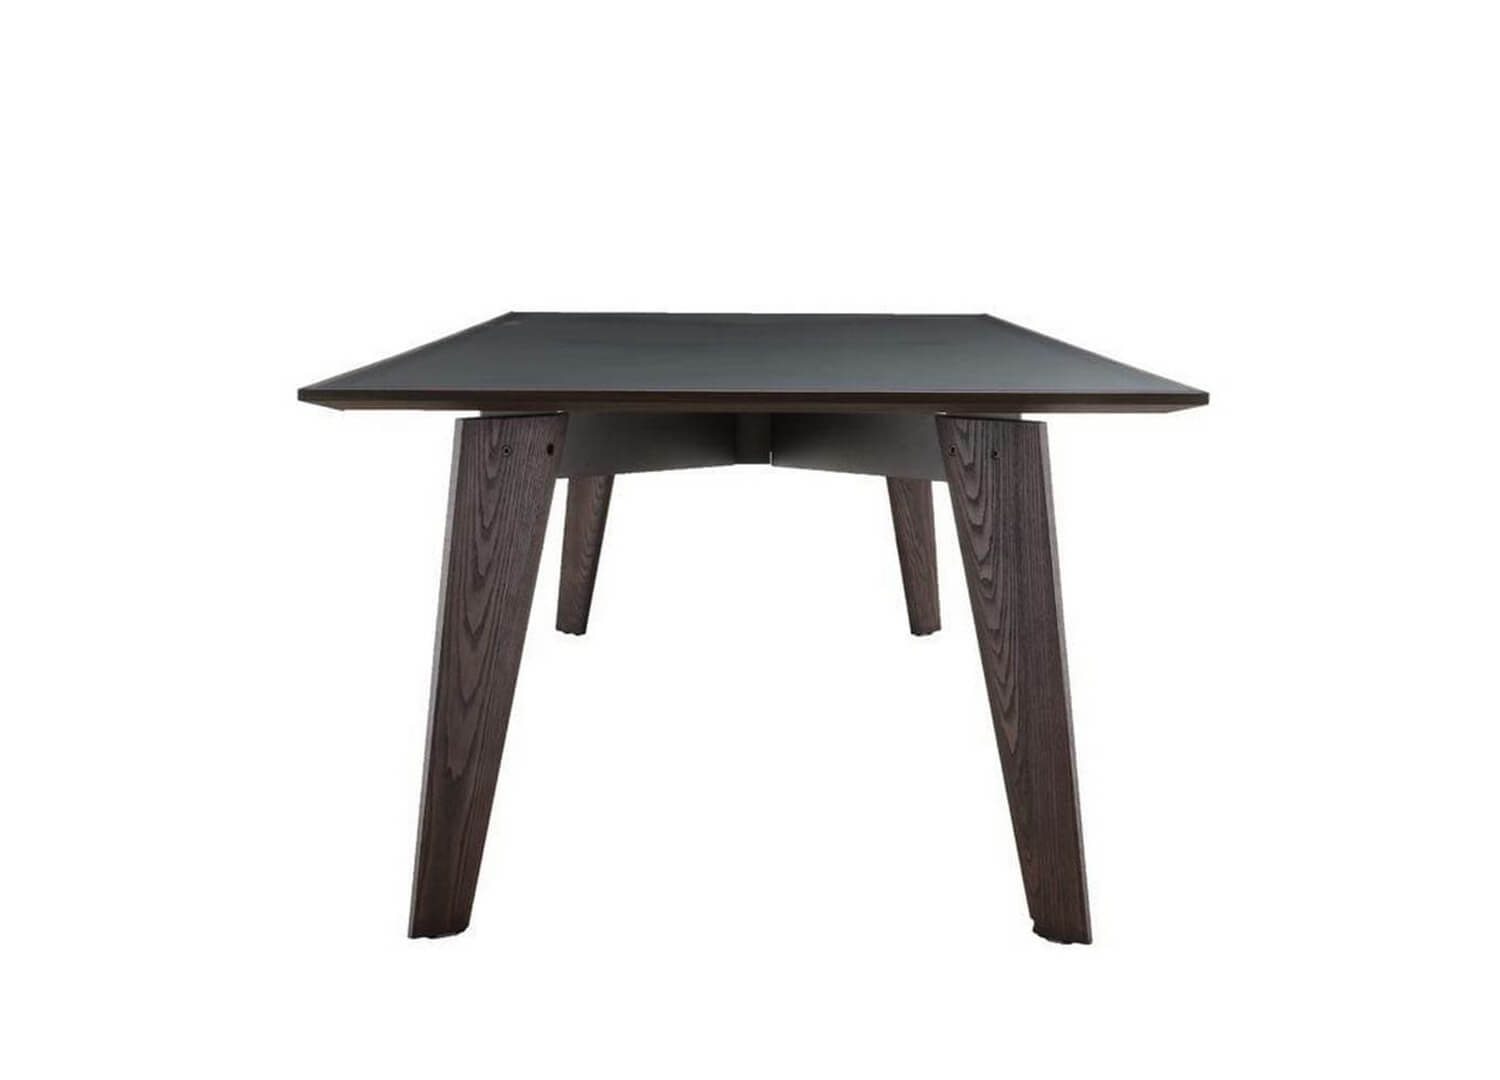 est living design directory howard table poliform.01